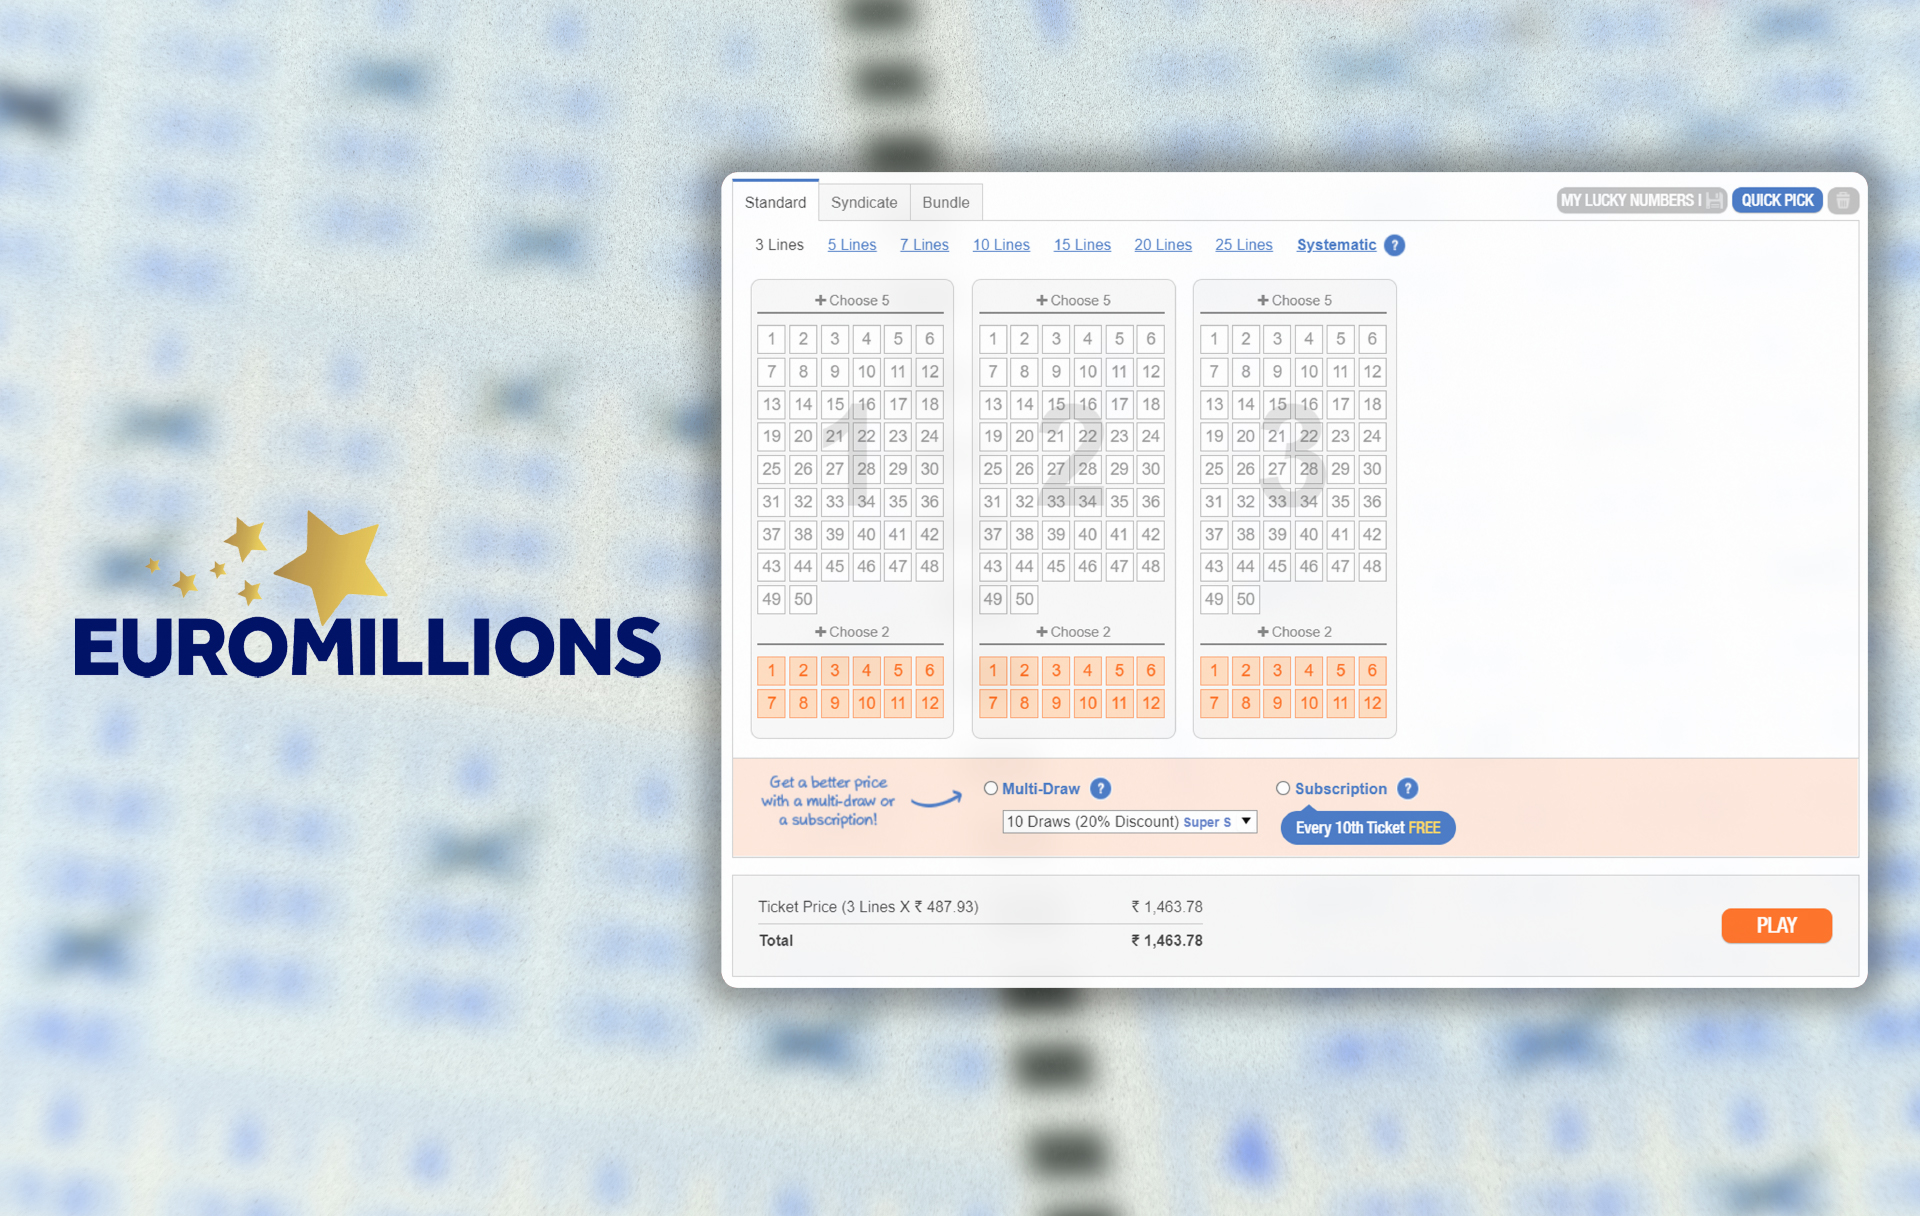 EuroMillions is another European popular lottery with a huge jackpot.